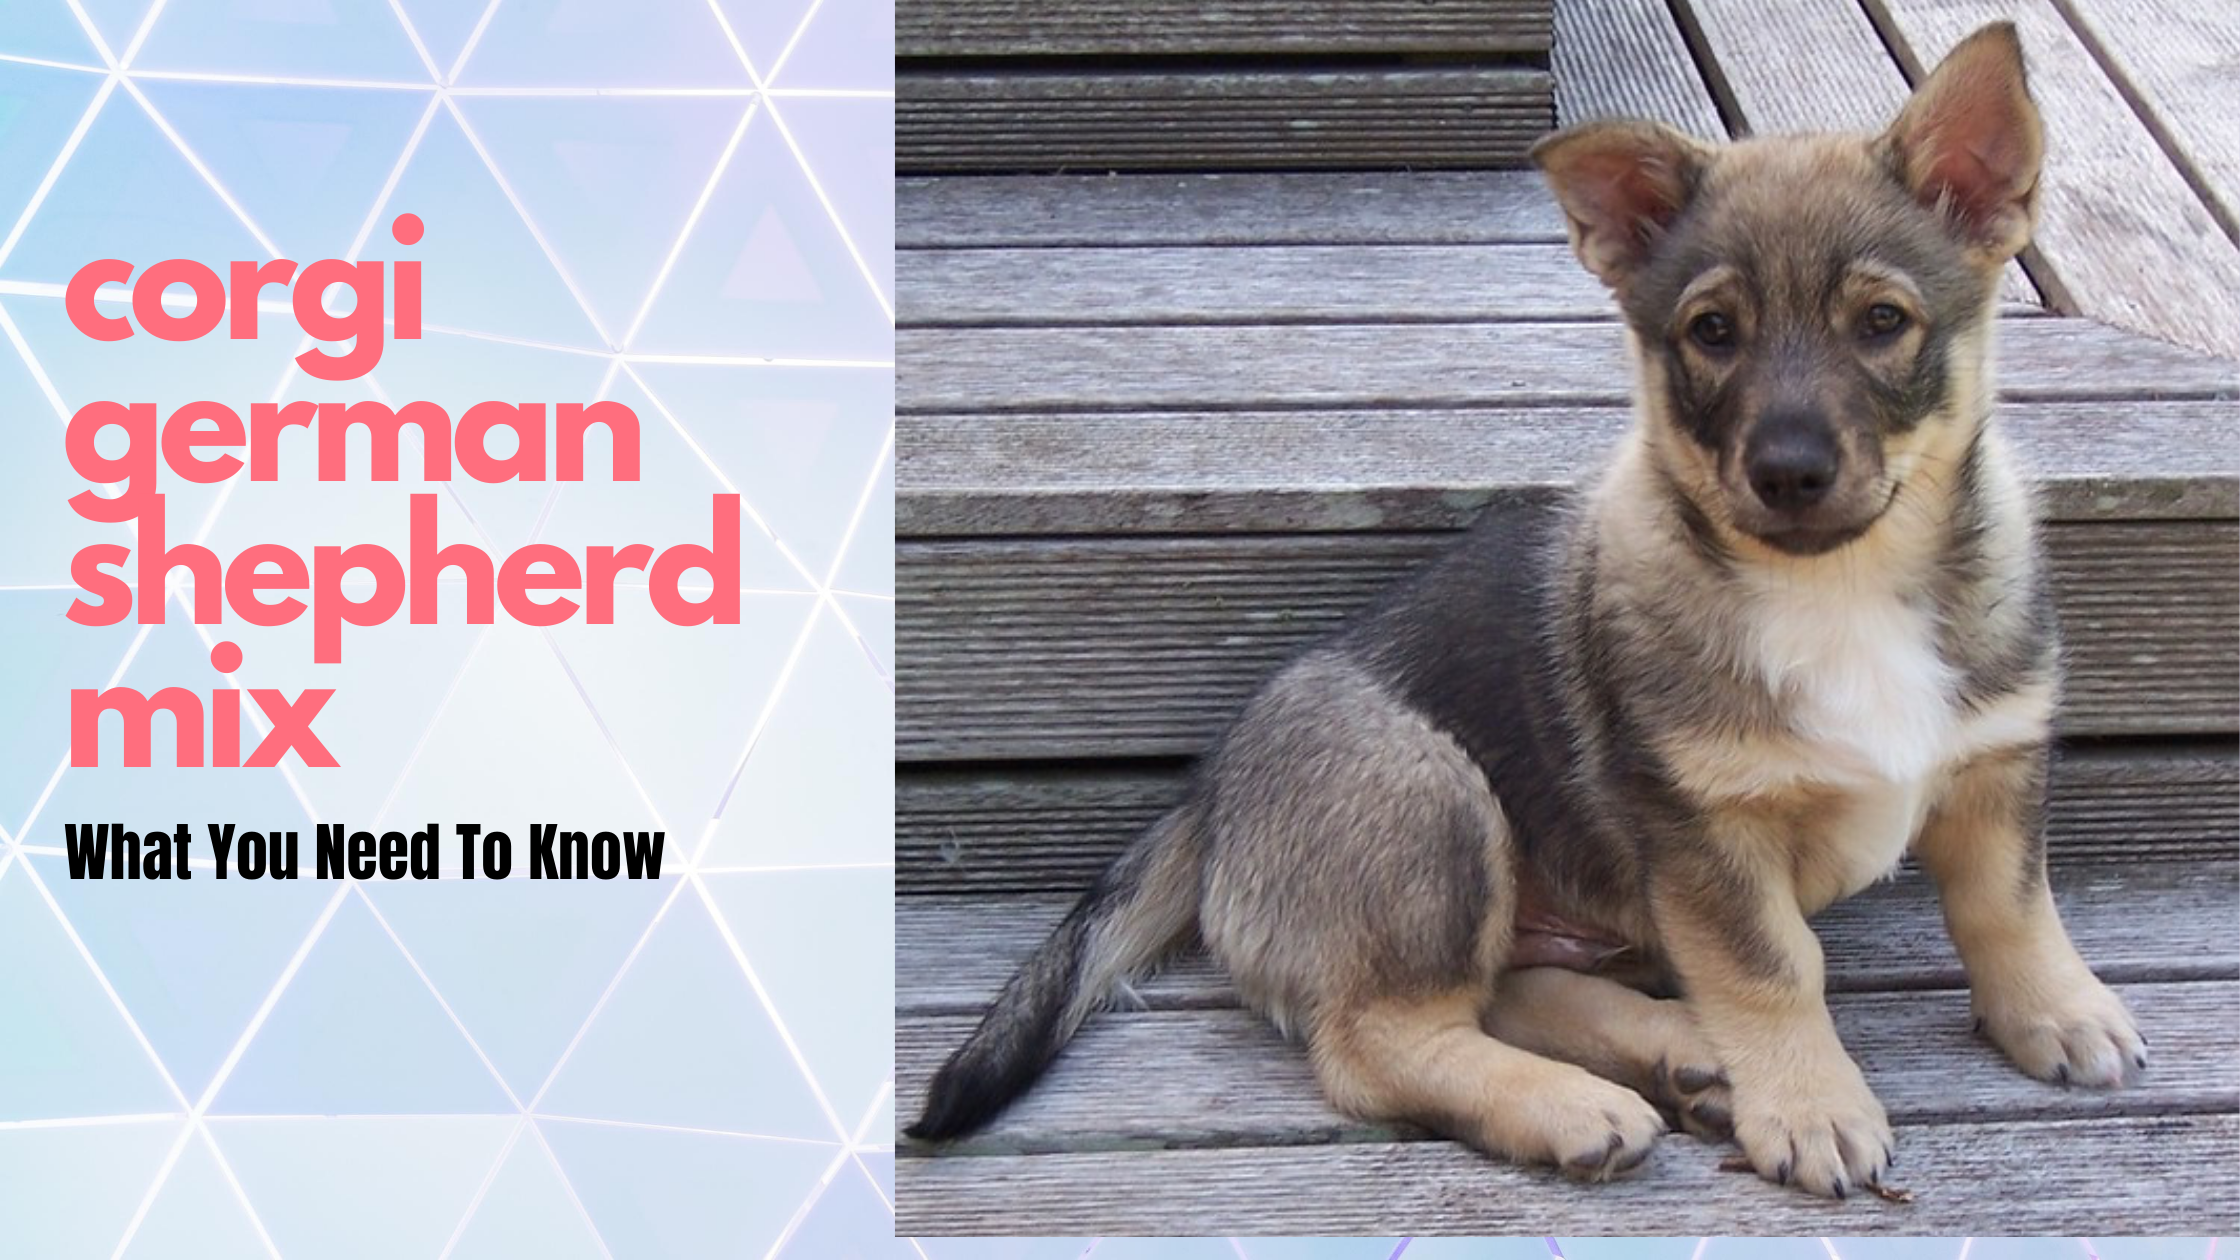 The Corgi German Shepherd Mix – What You Need To Know